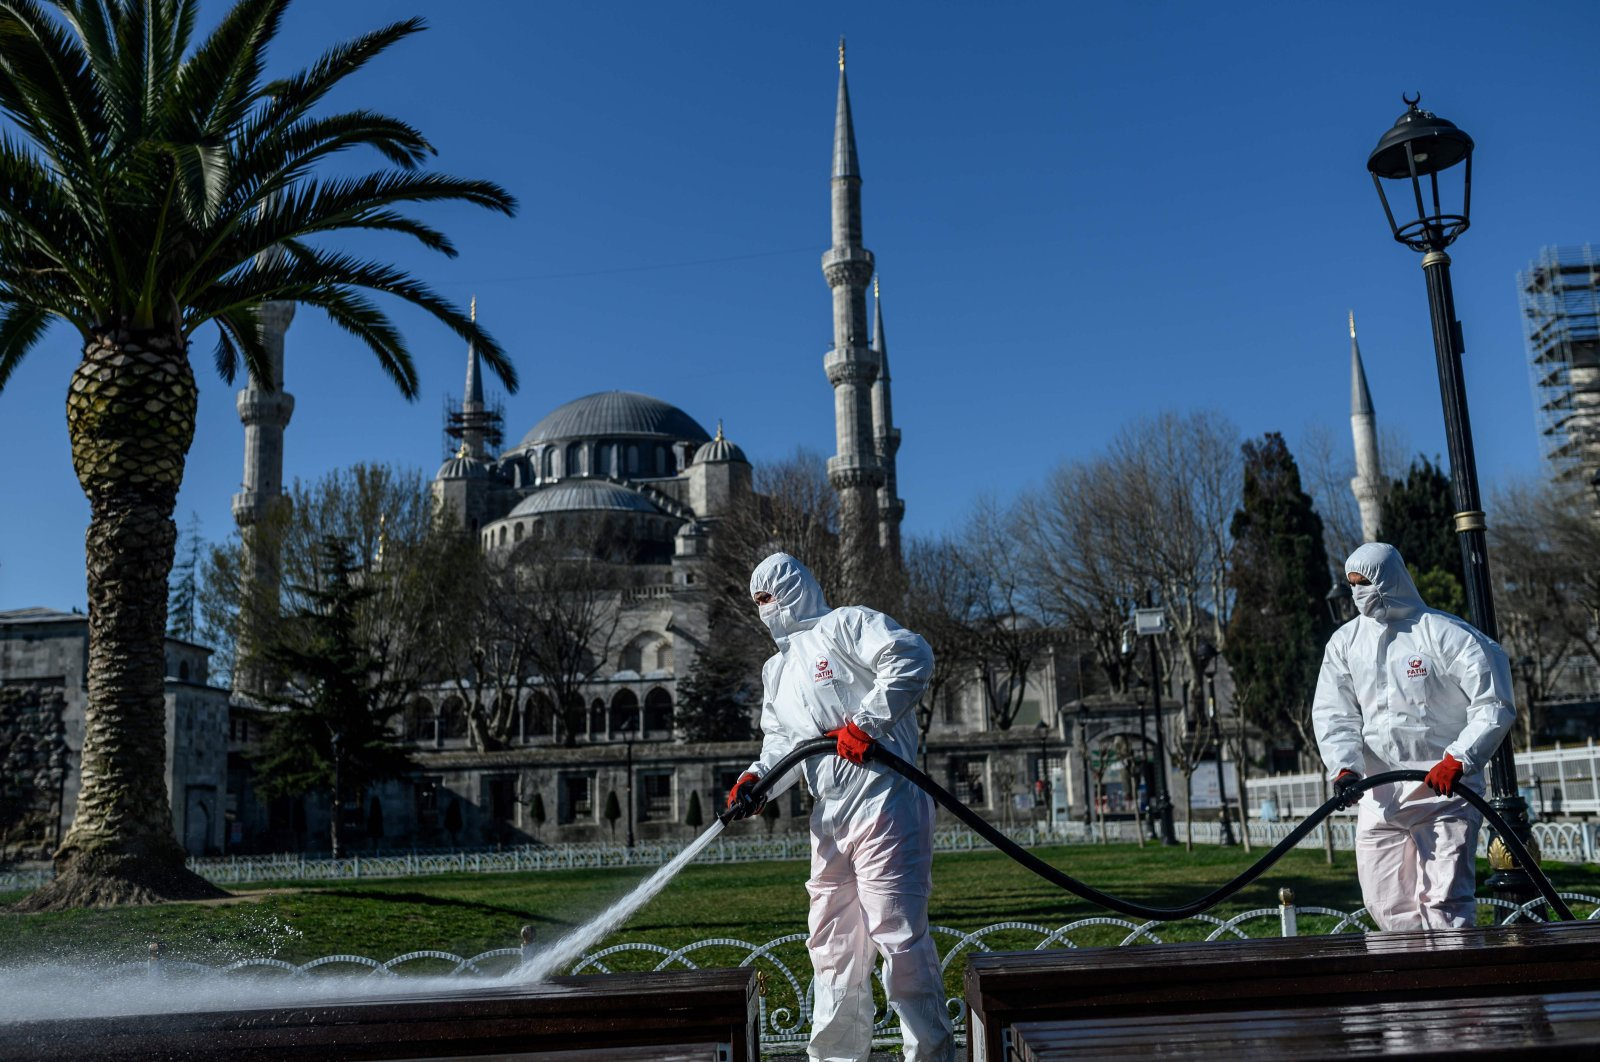 Members of the Fatih Municipality disinfect Istanbul's Sultanahmet square with the Blue Mosque seen in the background to prevent the spread of the new coronavirus on March 21, 2020. (AFP Photo)